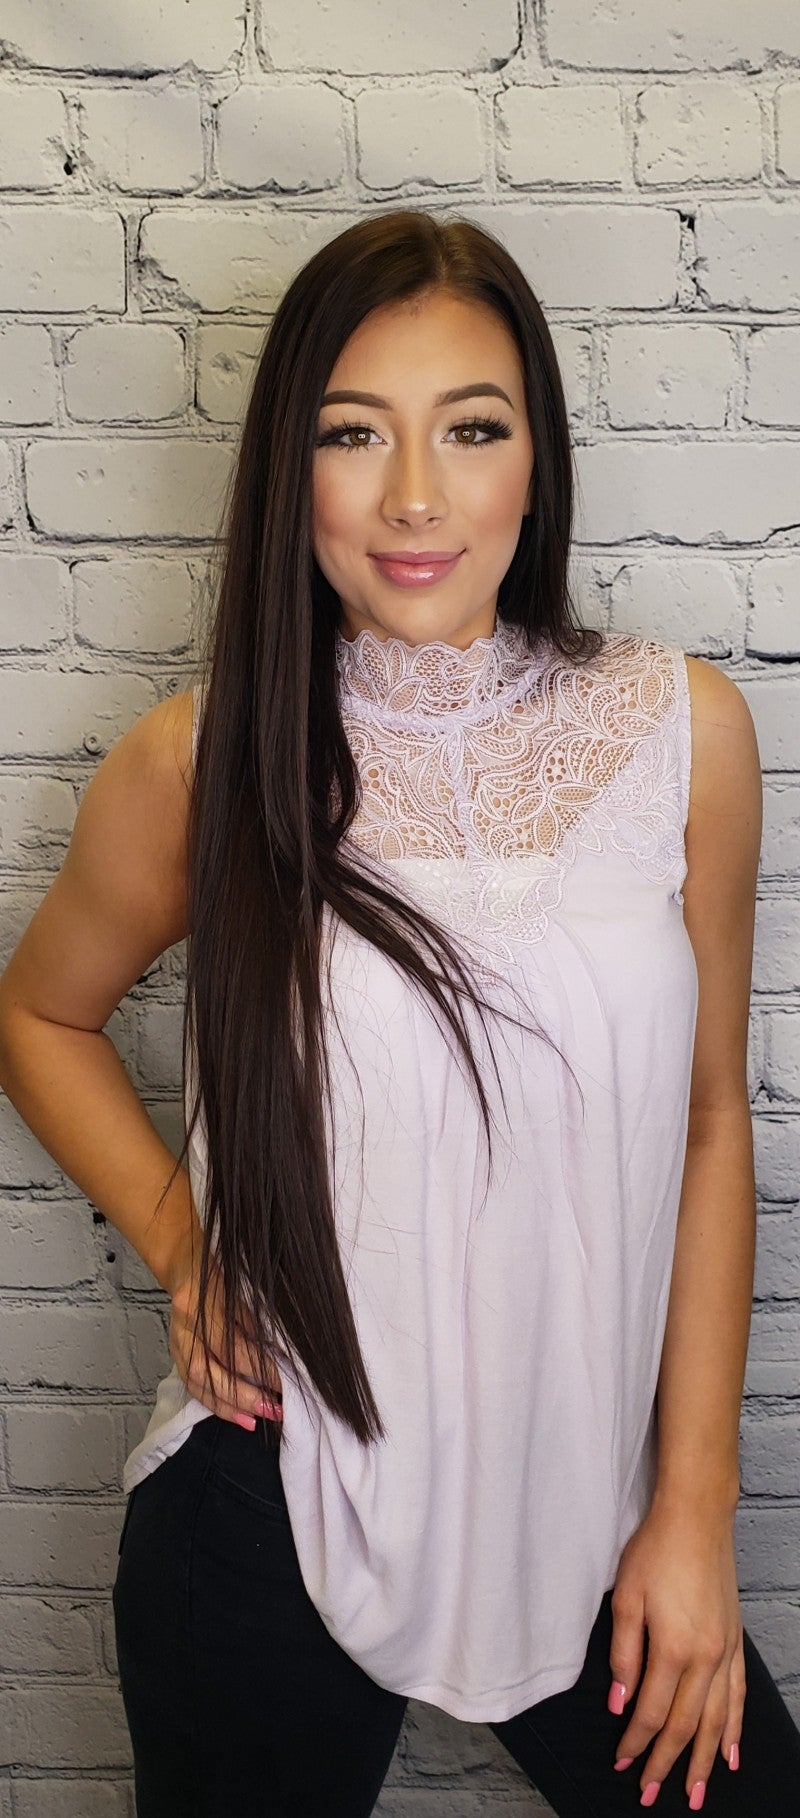 White Birch - A solid knot top with a mock neck featuring a lace inset and a keyhole back.